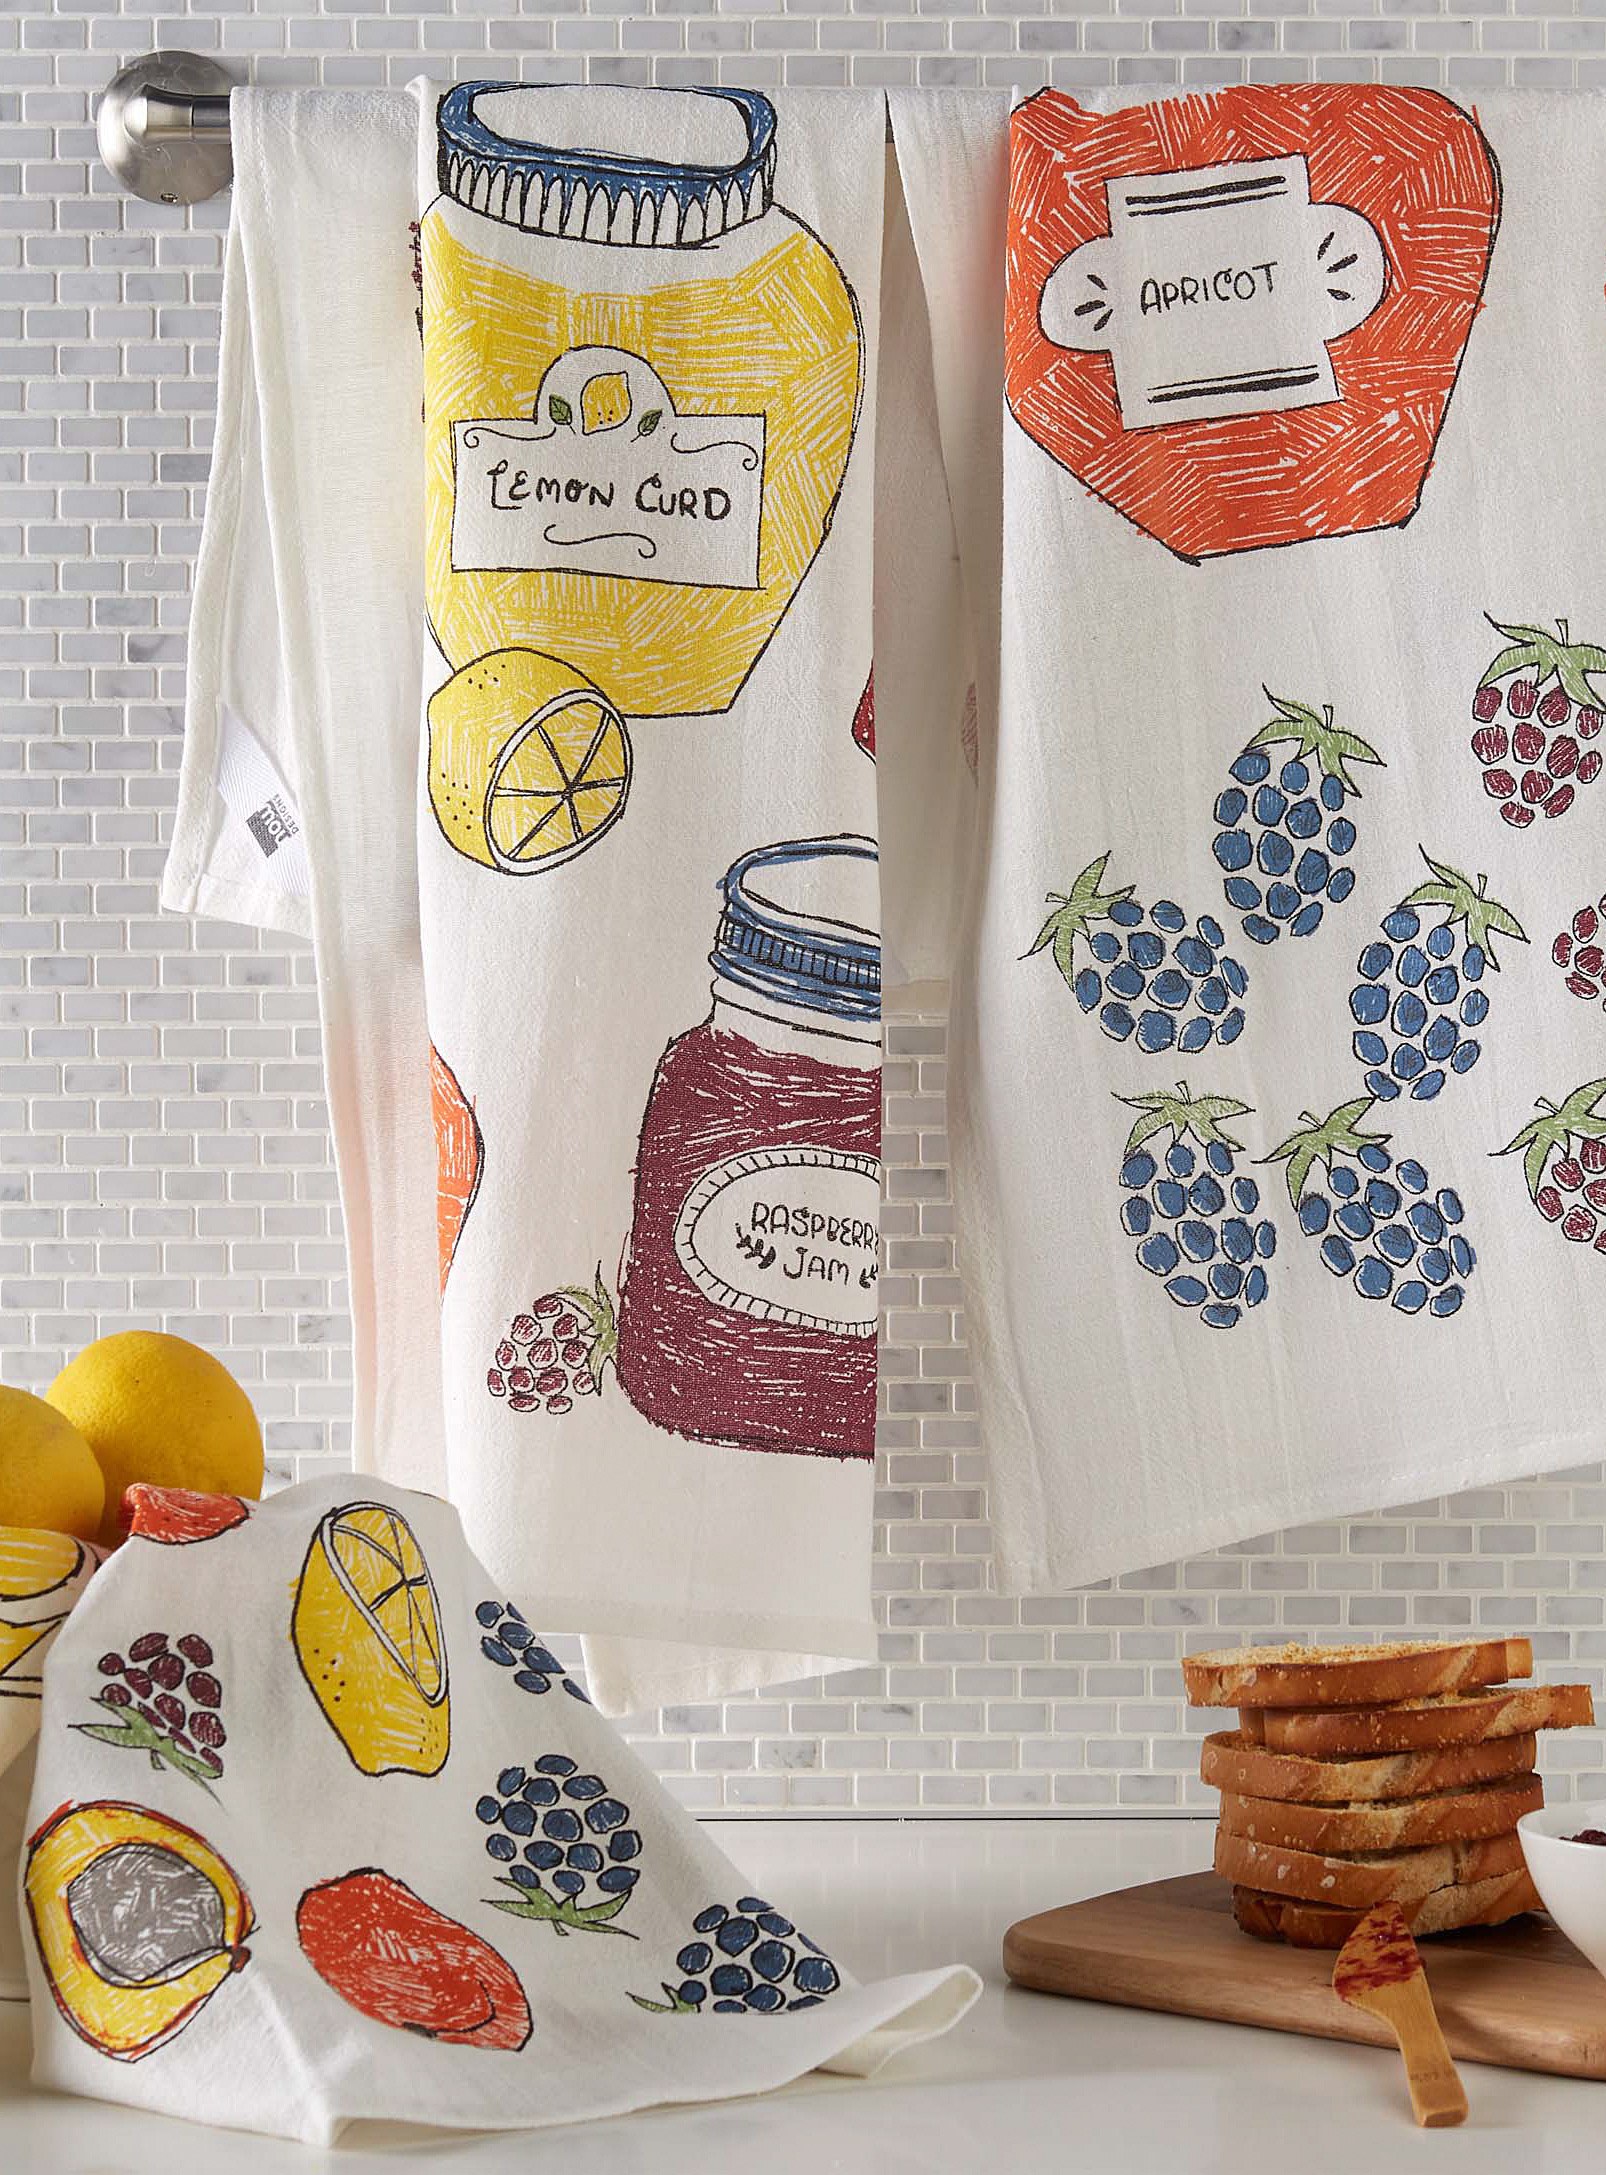 Two tea towels hanging on a bar above a kitchen counter